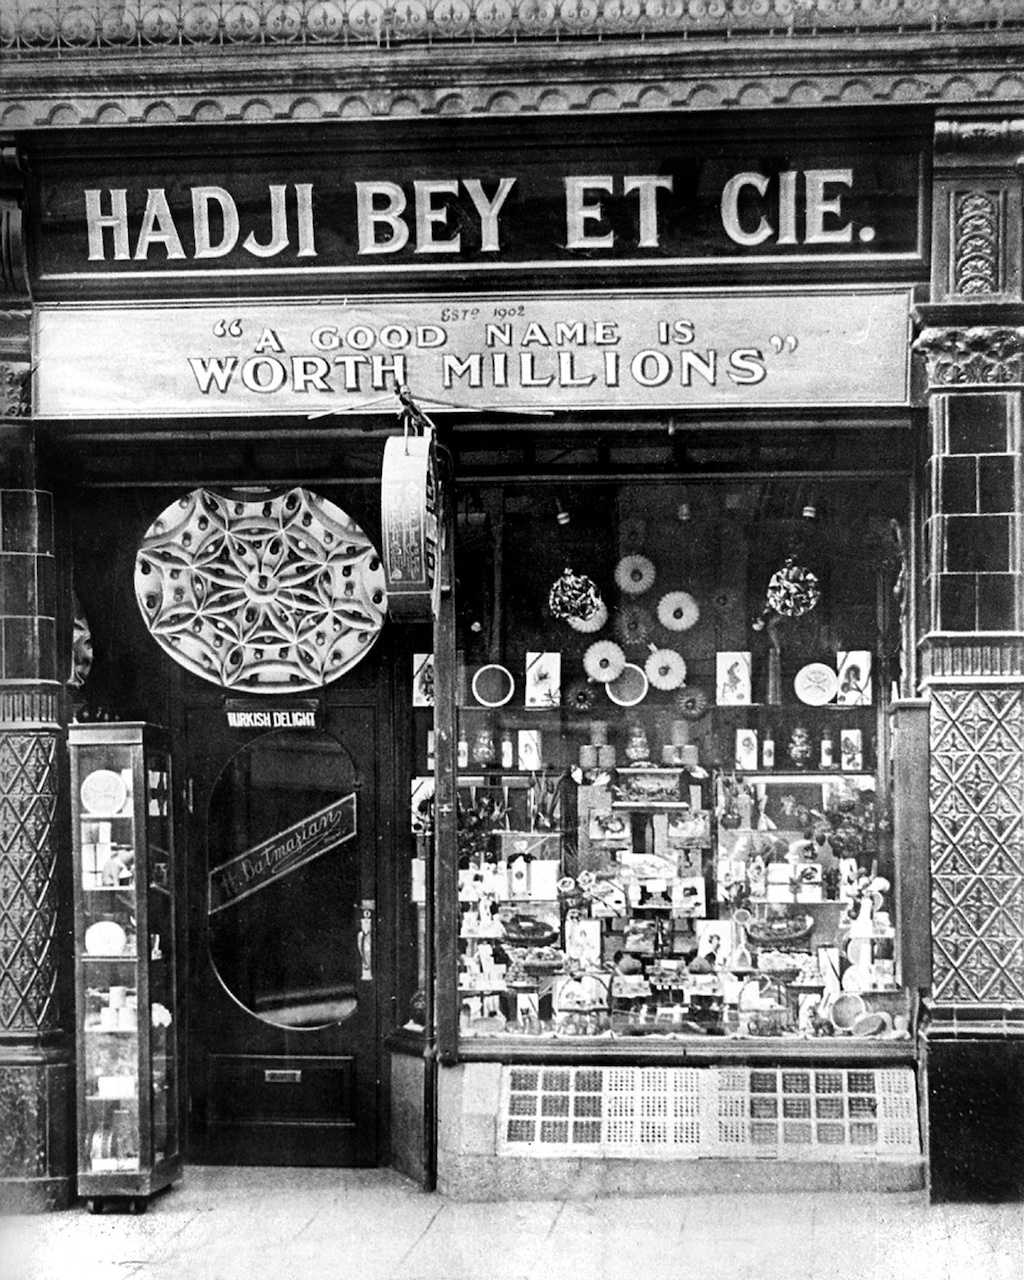 Hadji Bey shop in MacCurtain Street | Courtesy of Hadji Bey's